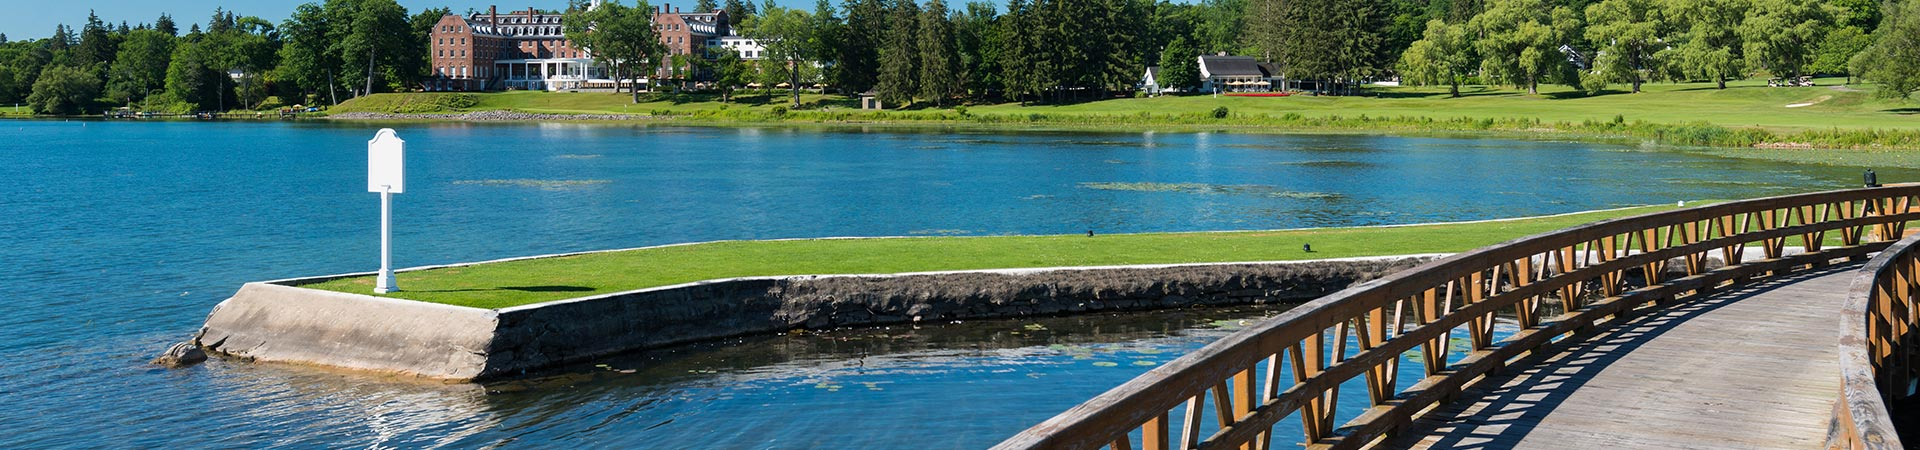 Golf Packages & Specials at Cooperstown, New York